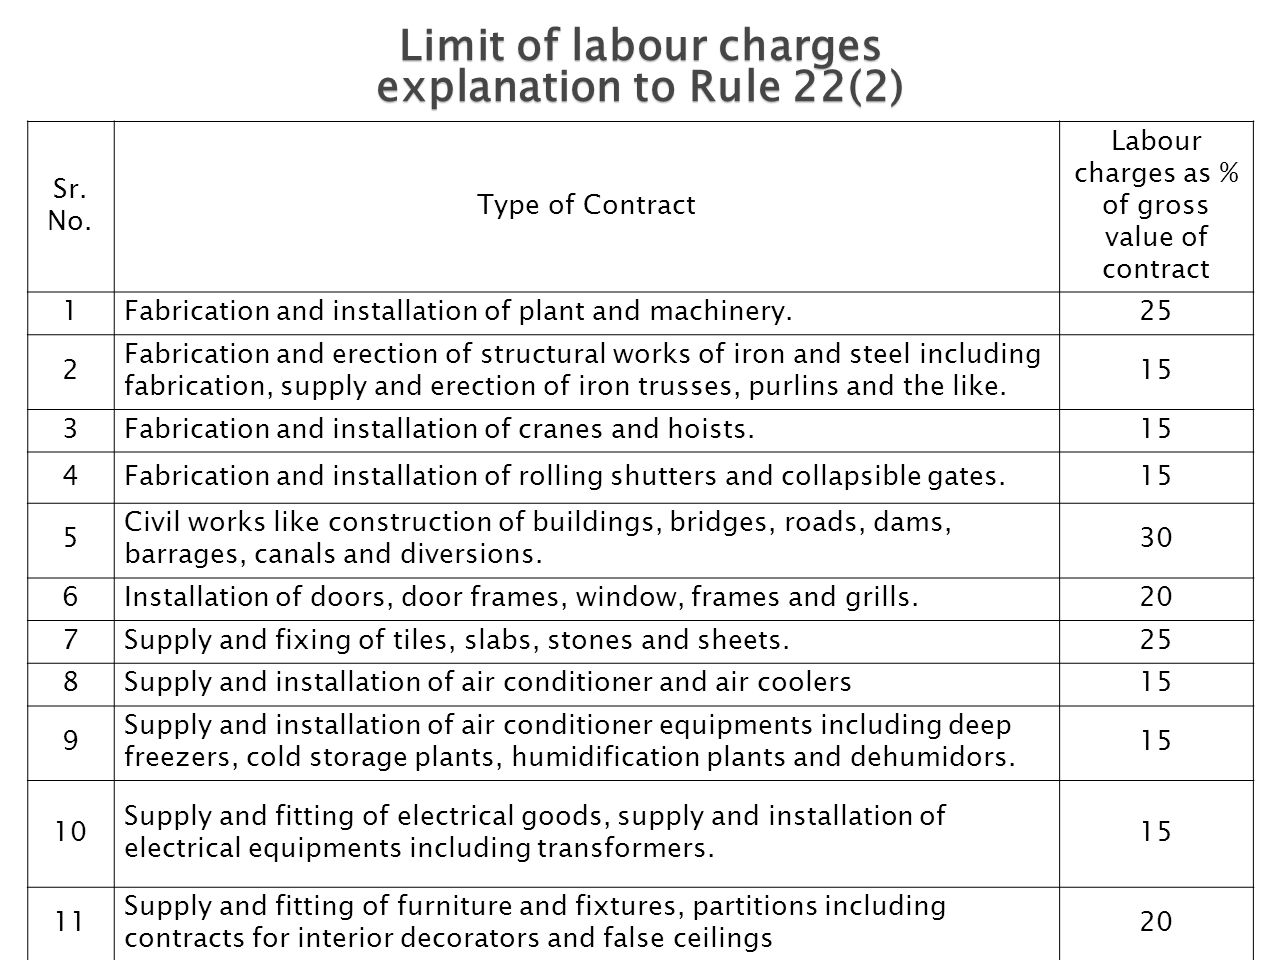 Limit of labour charges